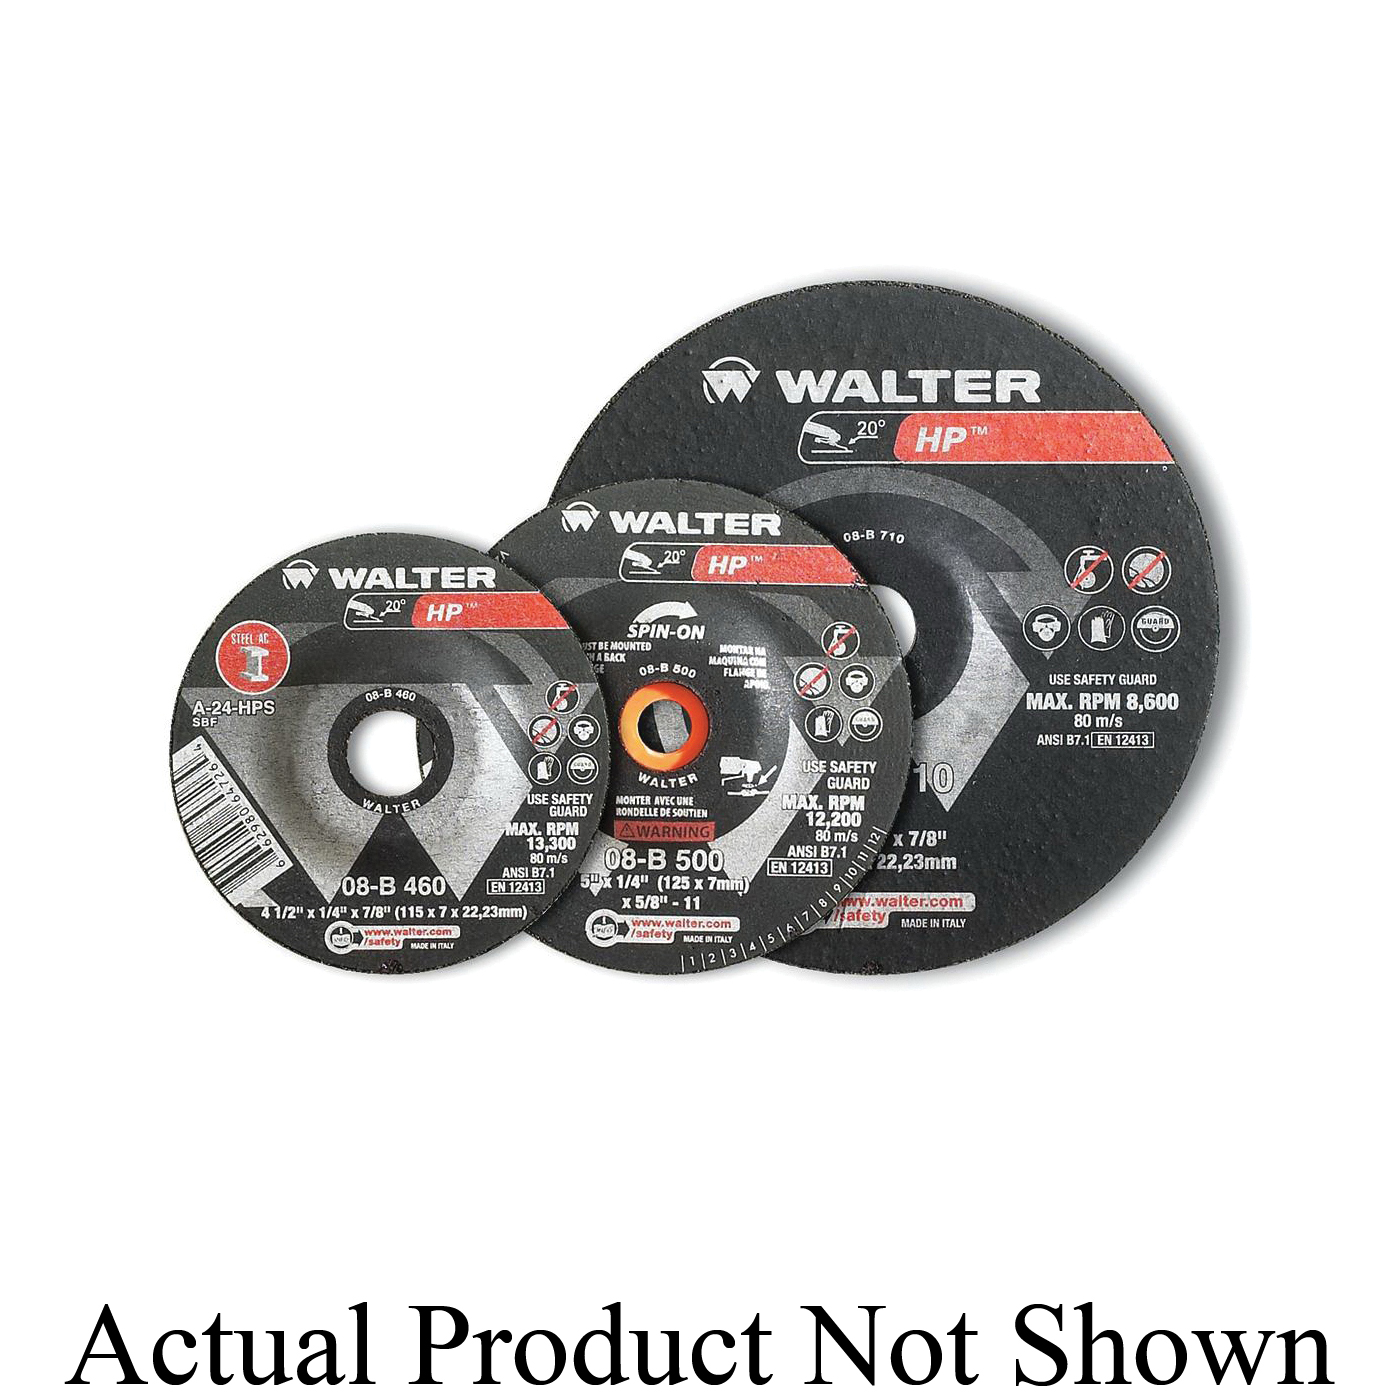 Walter Surface Technologies 08B462 HP COMBO™ High Performance Depressed Center Wheel, 4-1/2 in Dia x 1/8 in THK, 7/8 in Center Hole, 30 Grit, Aluminum Oxide Abrasive